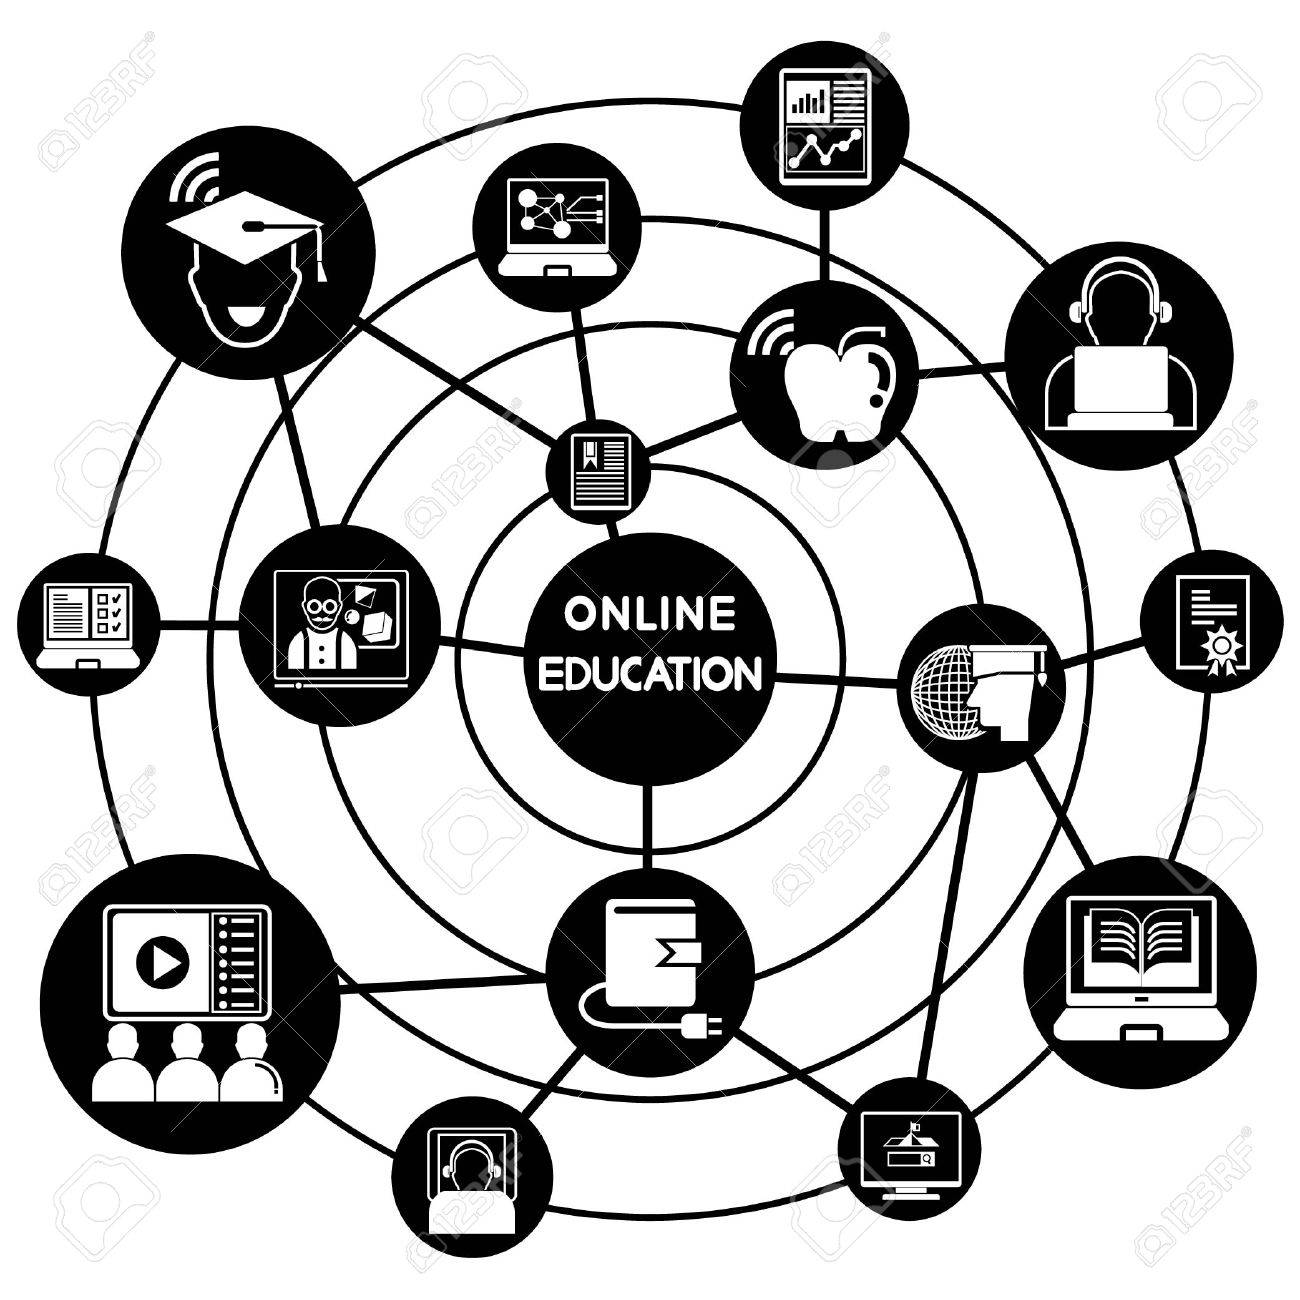 online education, connecting network diagram